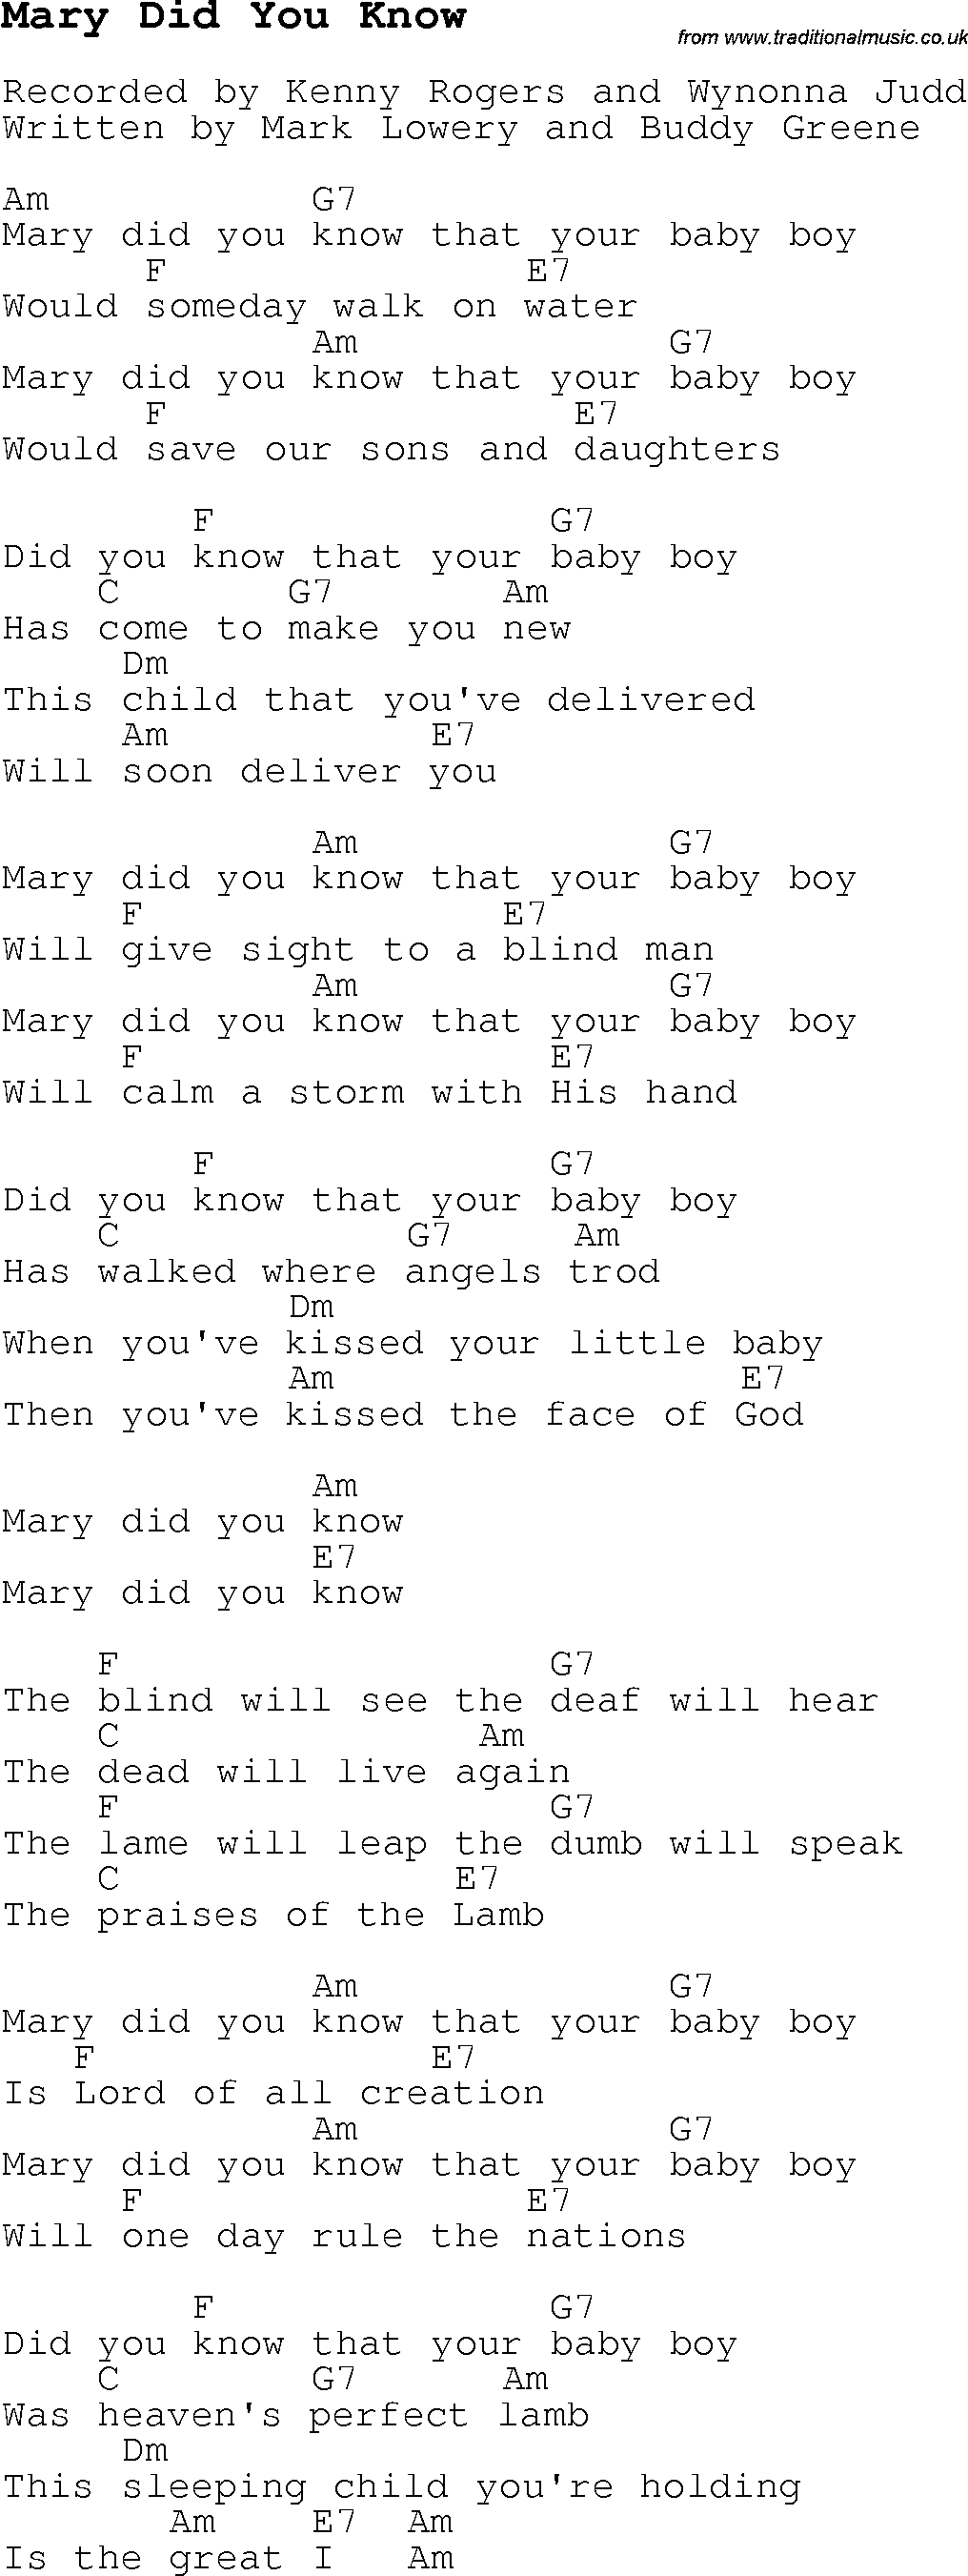 Christmas Carol/Song lyrics with chords for Mary Did You Know